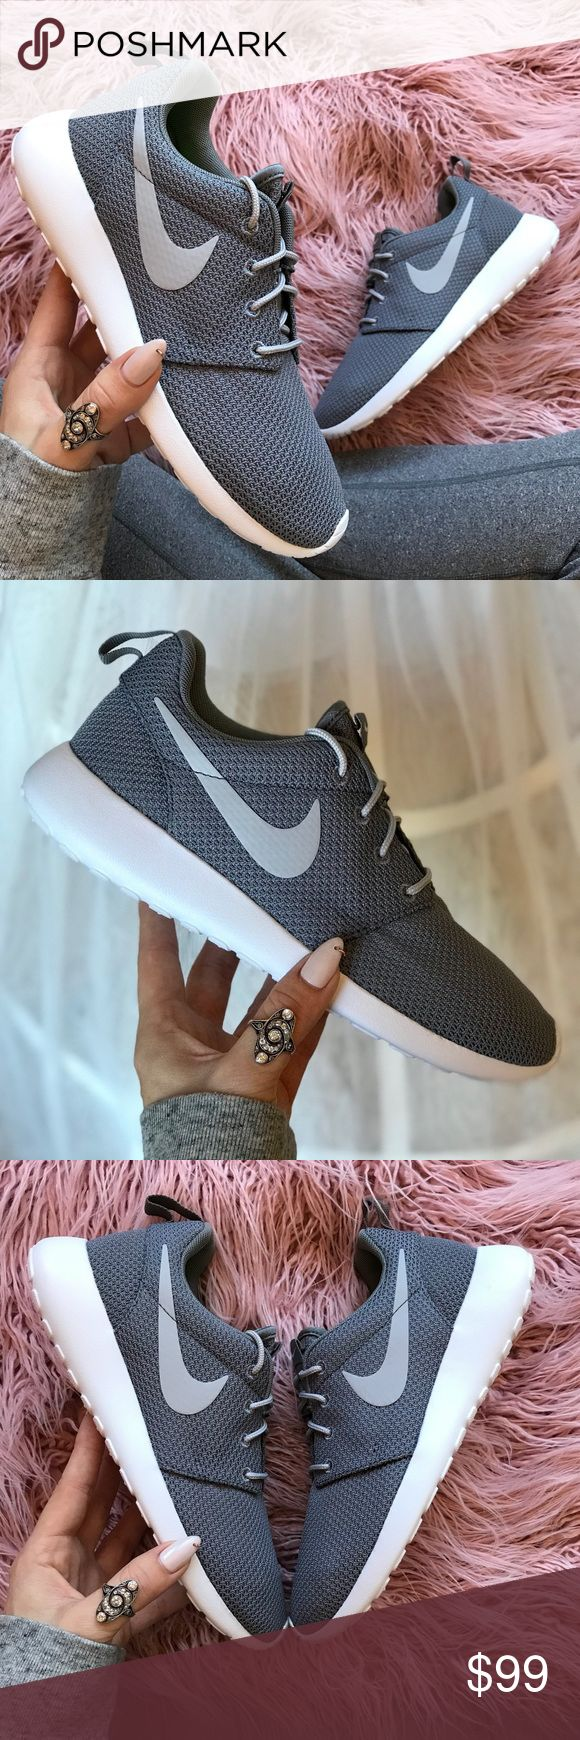 NWT Nike ID Roshe wolf 🐺 Grey Custom Brand new no box,price is firm!!custom made Nike ID. Everywhere you look, you can see ladies rocking a pair of women's Roshe Ones. They're one of the most versatile shoes from Nike. Wear them with or without socks, dress them up or down — the Roshe One can do it all. Its superior ventilation comes from the ultra-lightweight mesh textile or suede upper, offering you the breathability your feet need.  The full-length Phylon™ midsole provides all-day…